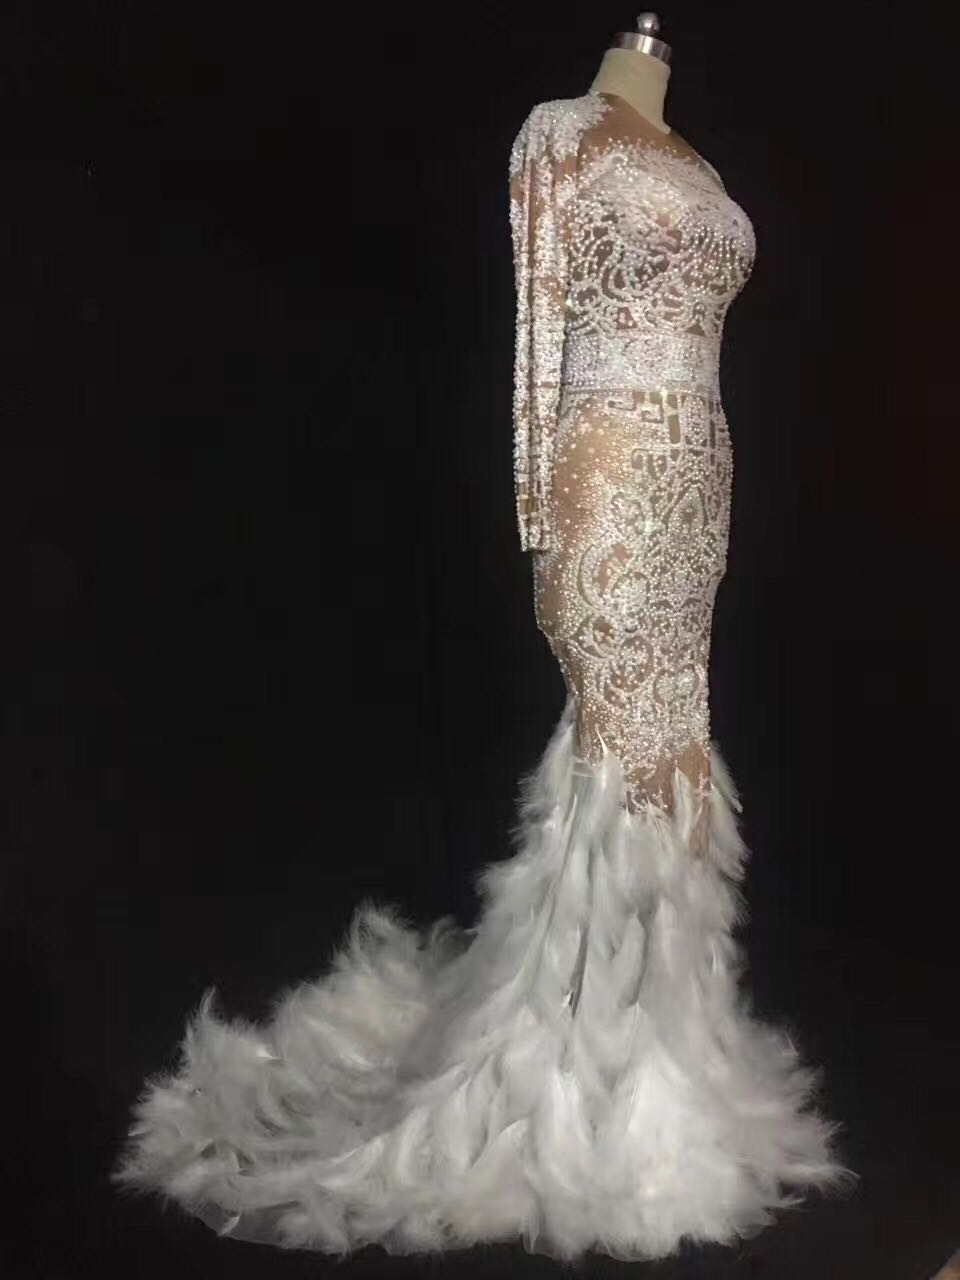 Female Manual Full Glisten Crystals Long Sleeve Feather Dress Outfits Singer Host Stage Show Maxi Floor Length Dress for Women